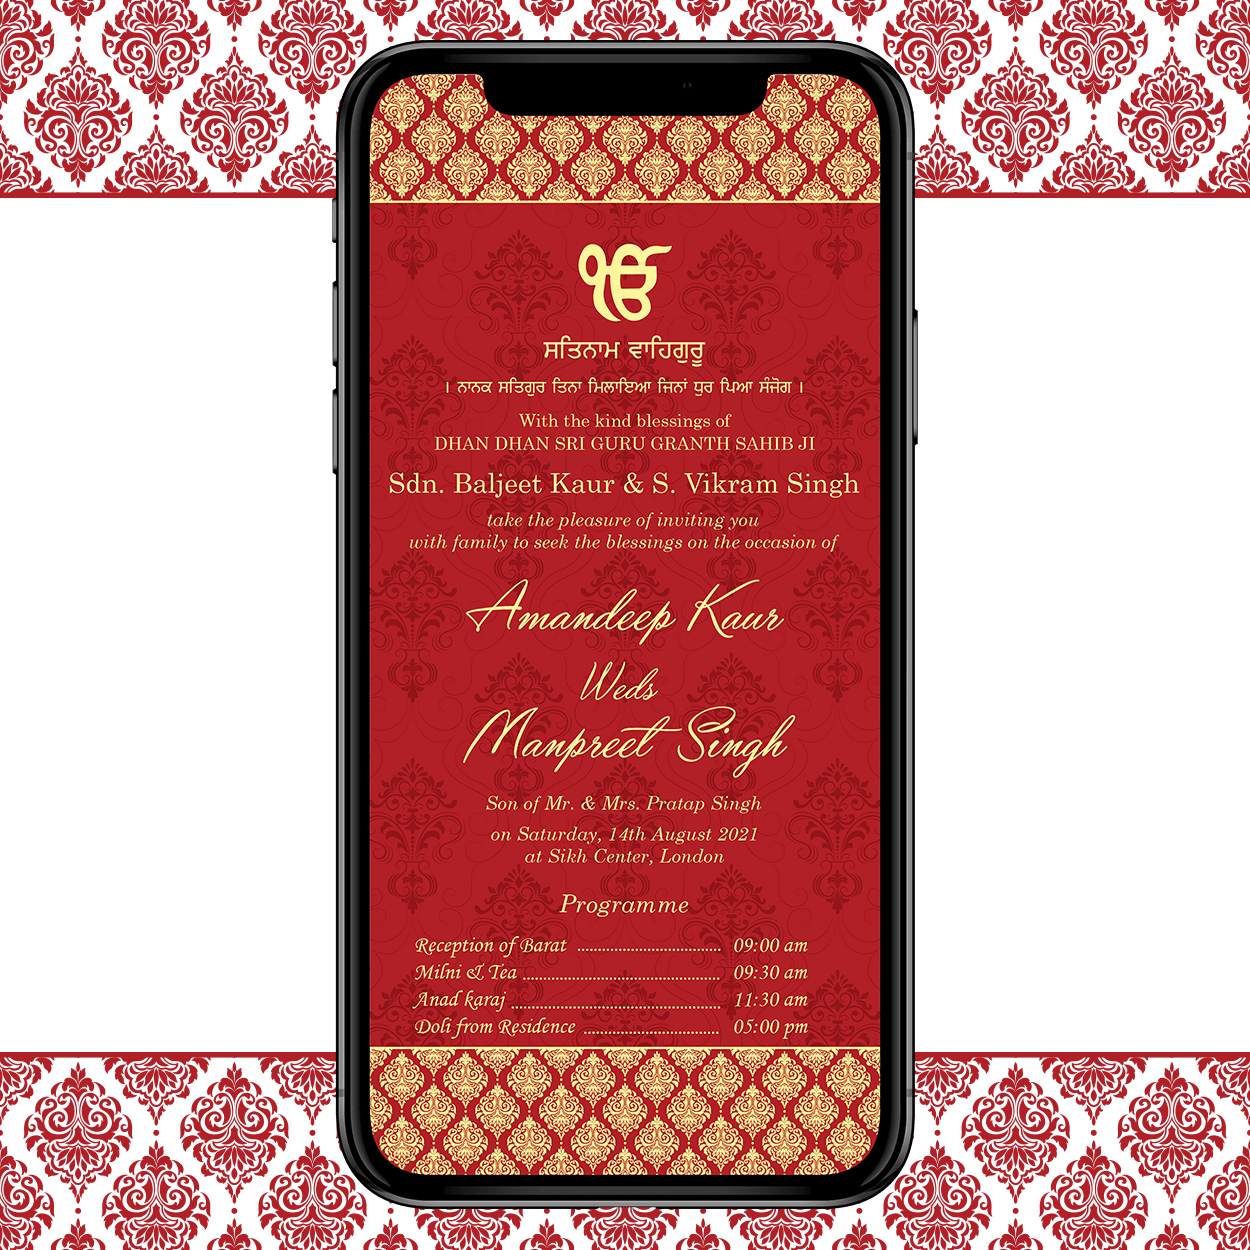 Invites Cafe Sikh Wedding Invitation 002